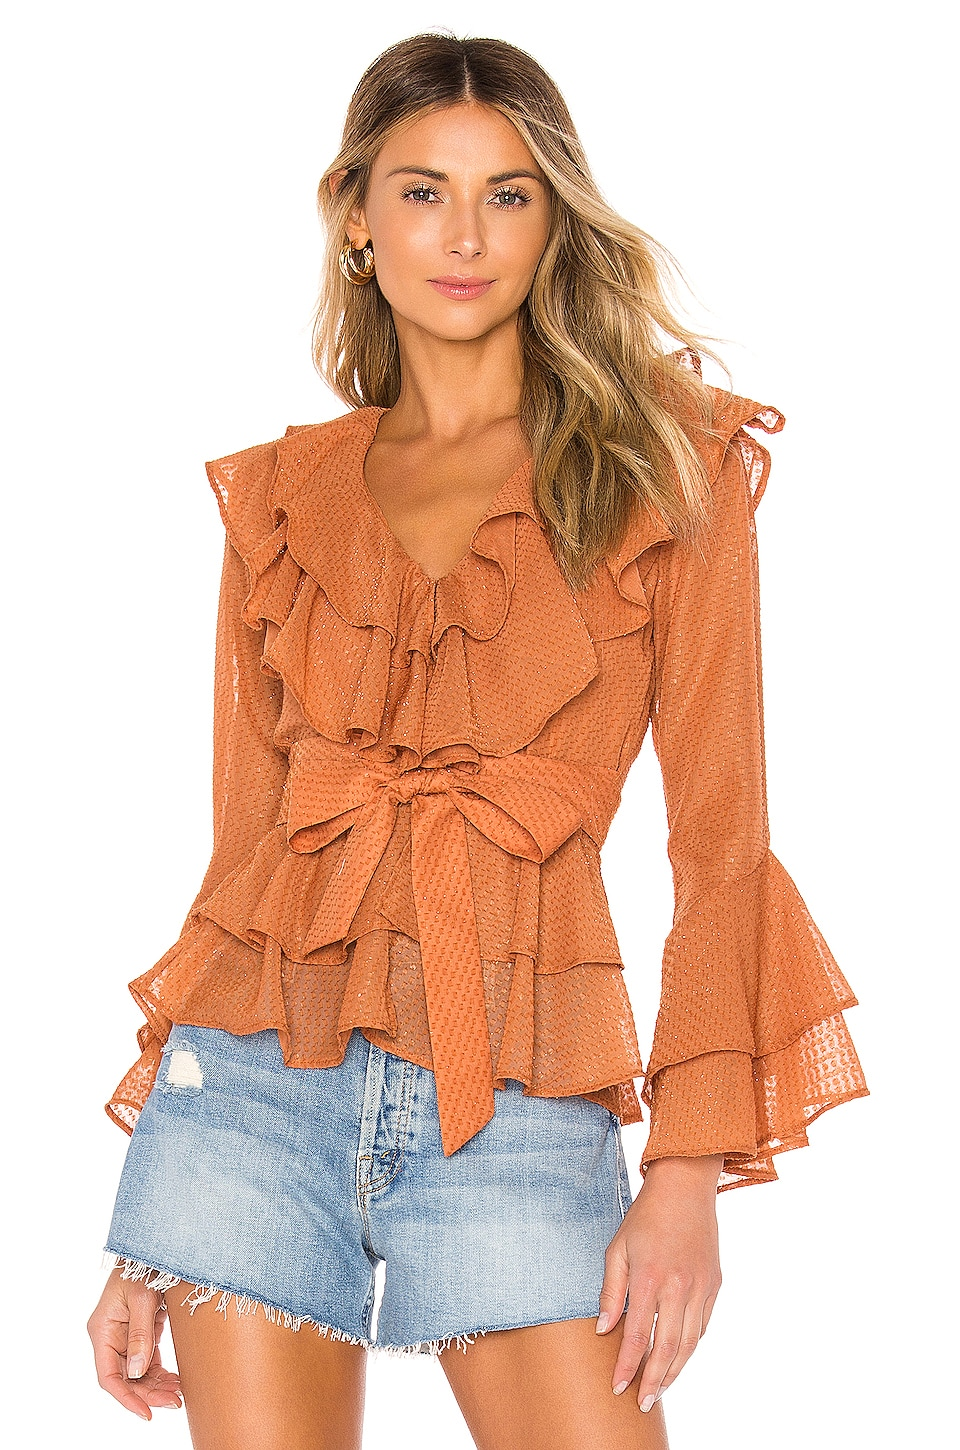 House of Harlow 1960 X REVOLVE Quintana Blouse in Peach